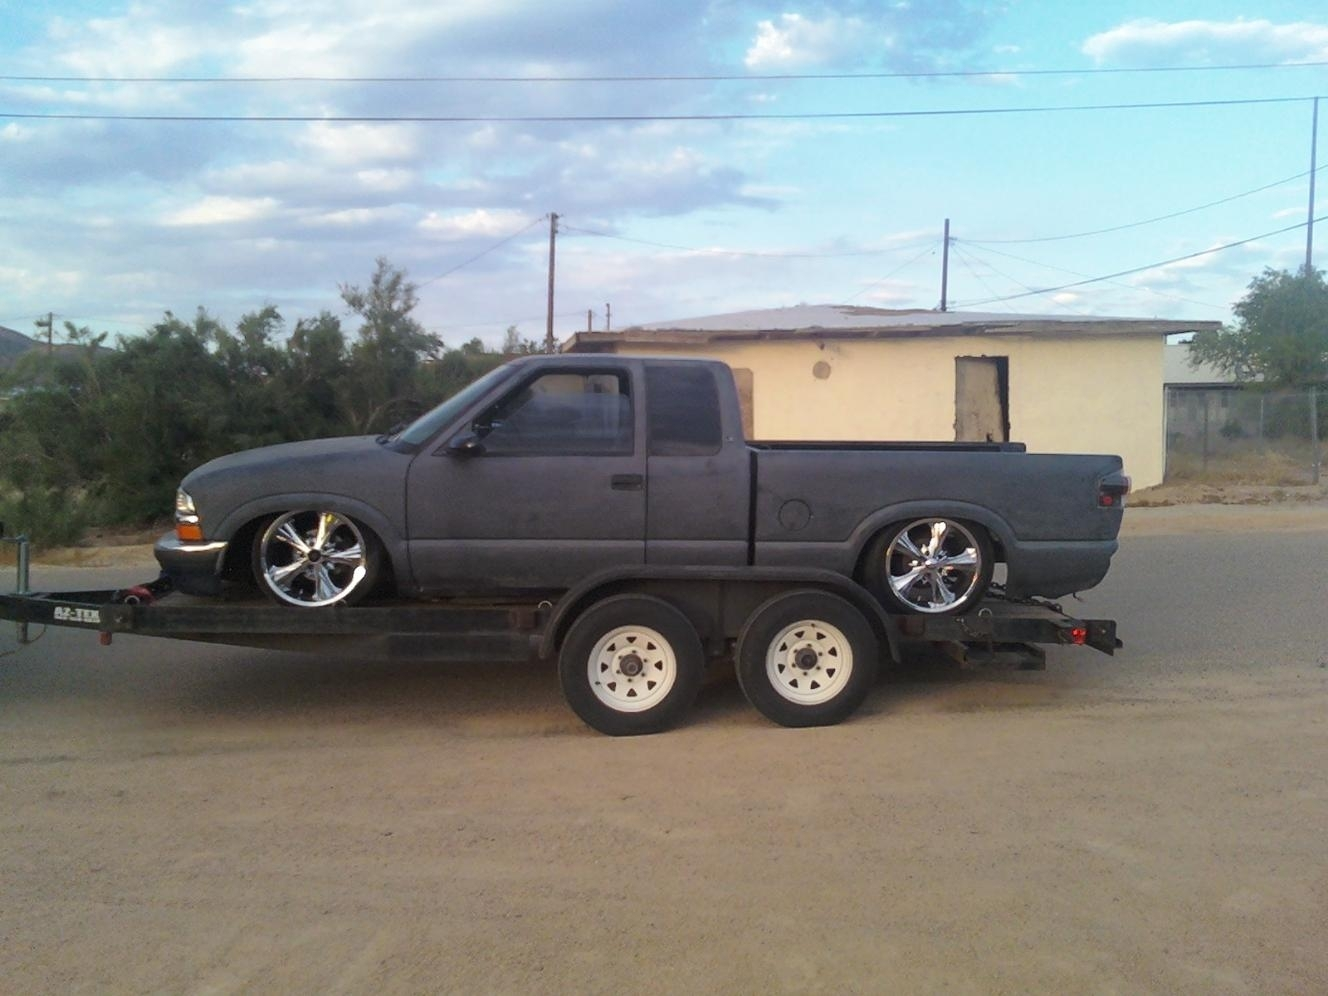 antonio74d 39 s 1998 chevrolet s10 regular cab in barstow ca. Black Bedroom Furniture Sets. Home Design Ideas